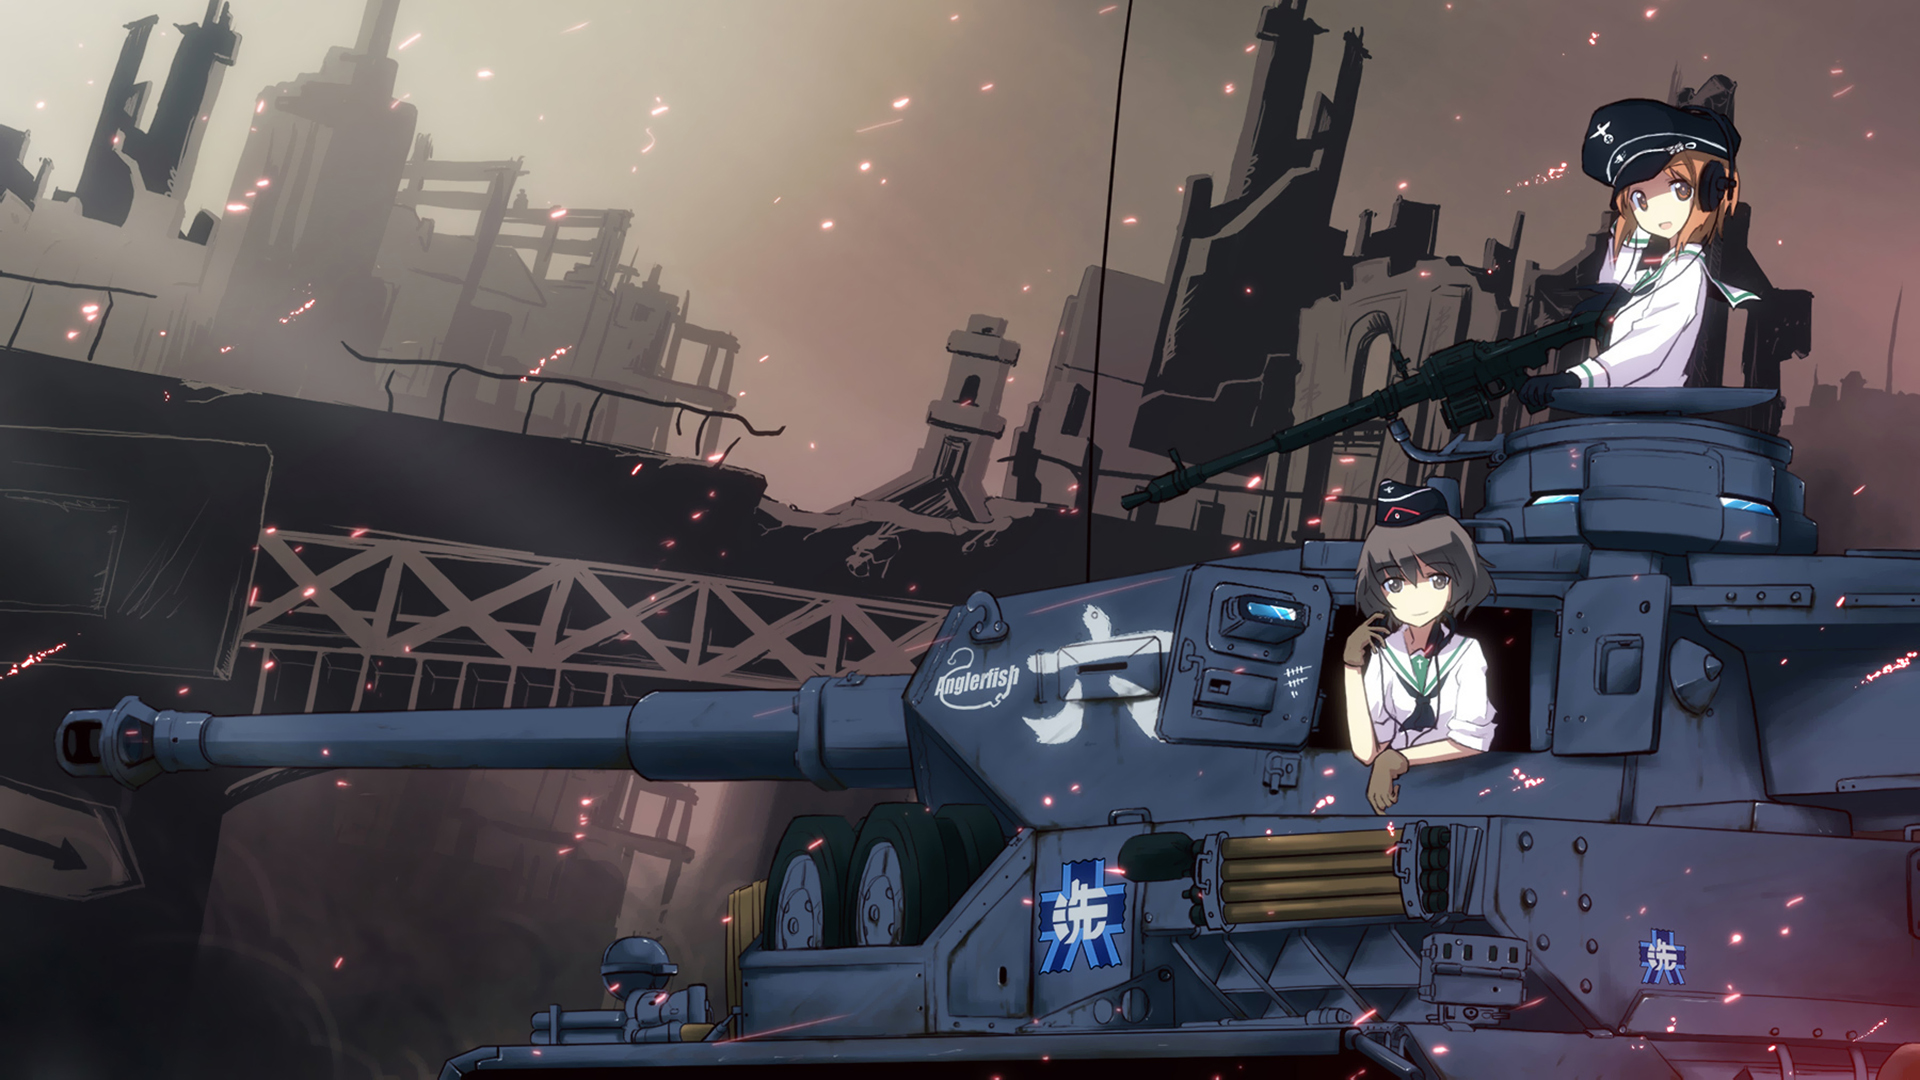 Girls Und Panzer Backgrounds, Compatible - PC, Mobile, Gadgets| 1920x1080 px